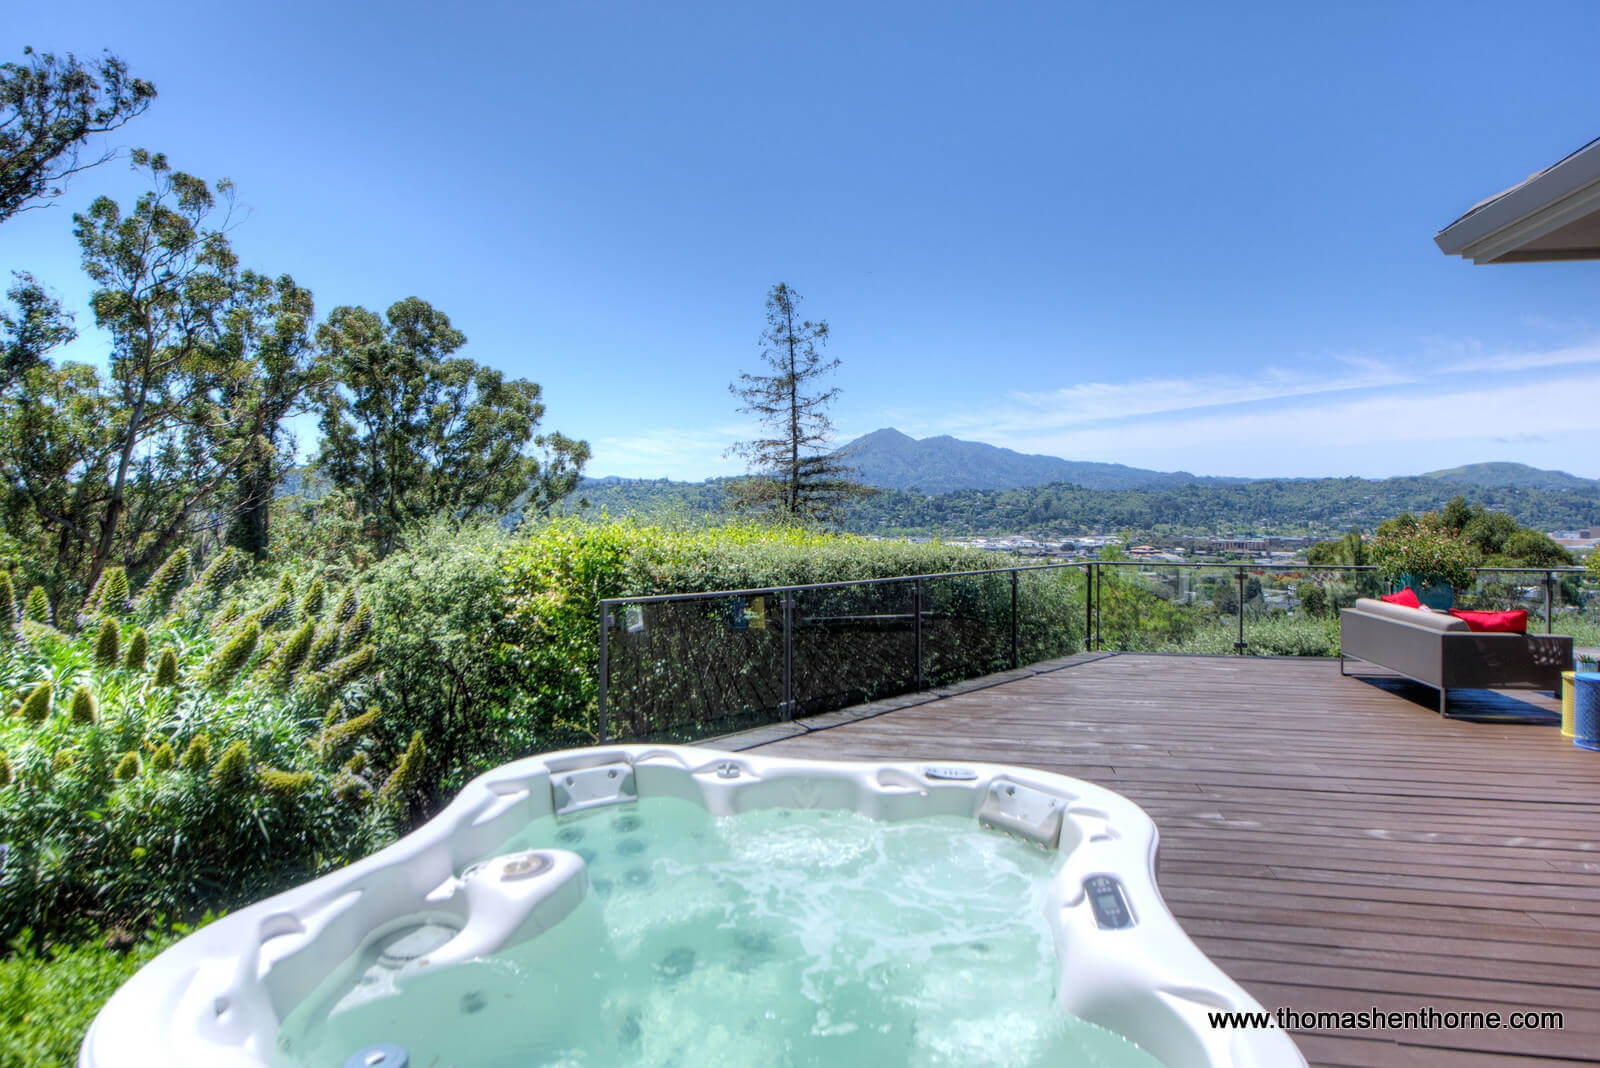 Hot tub with view of Mt. Tamalpais